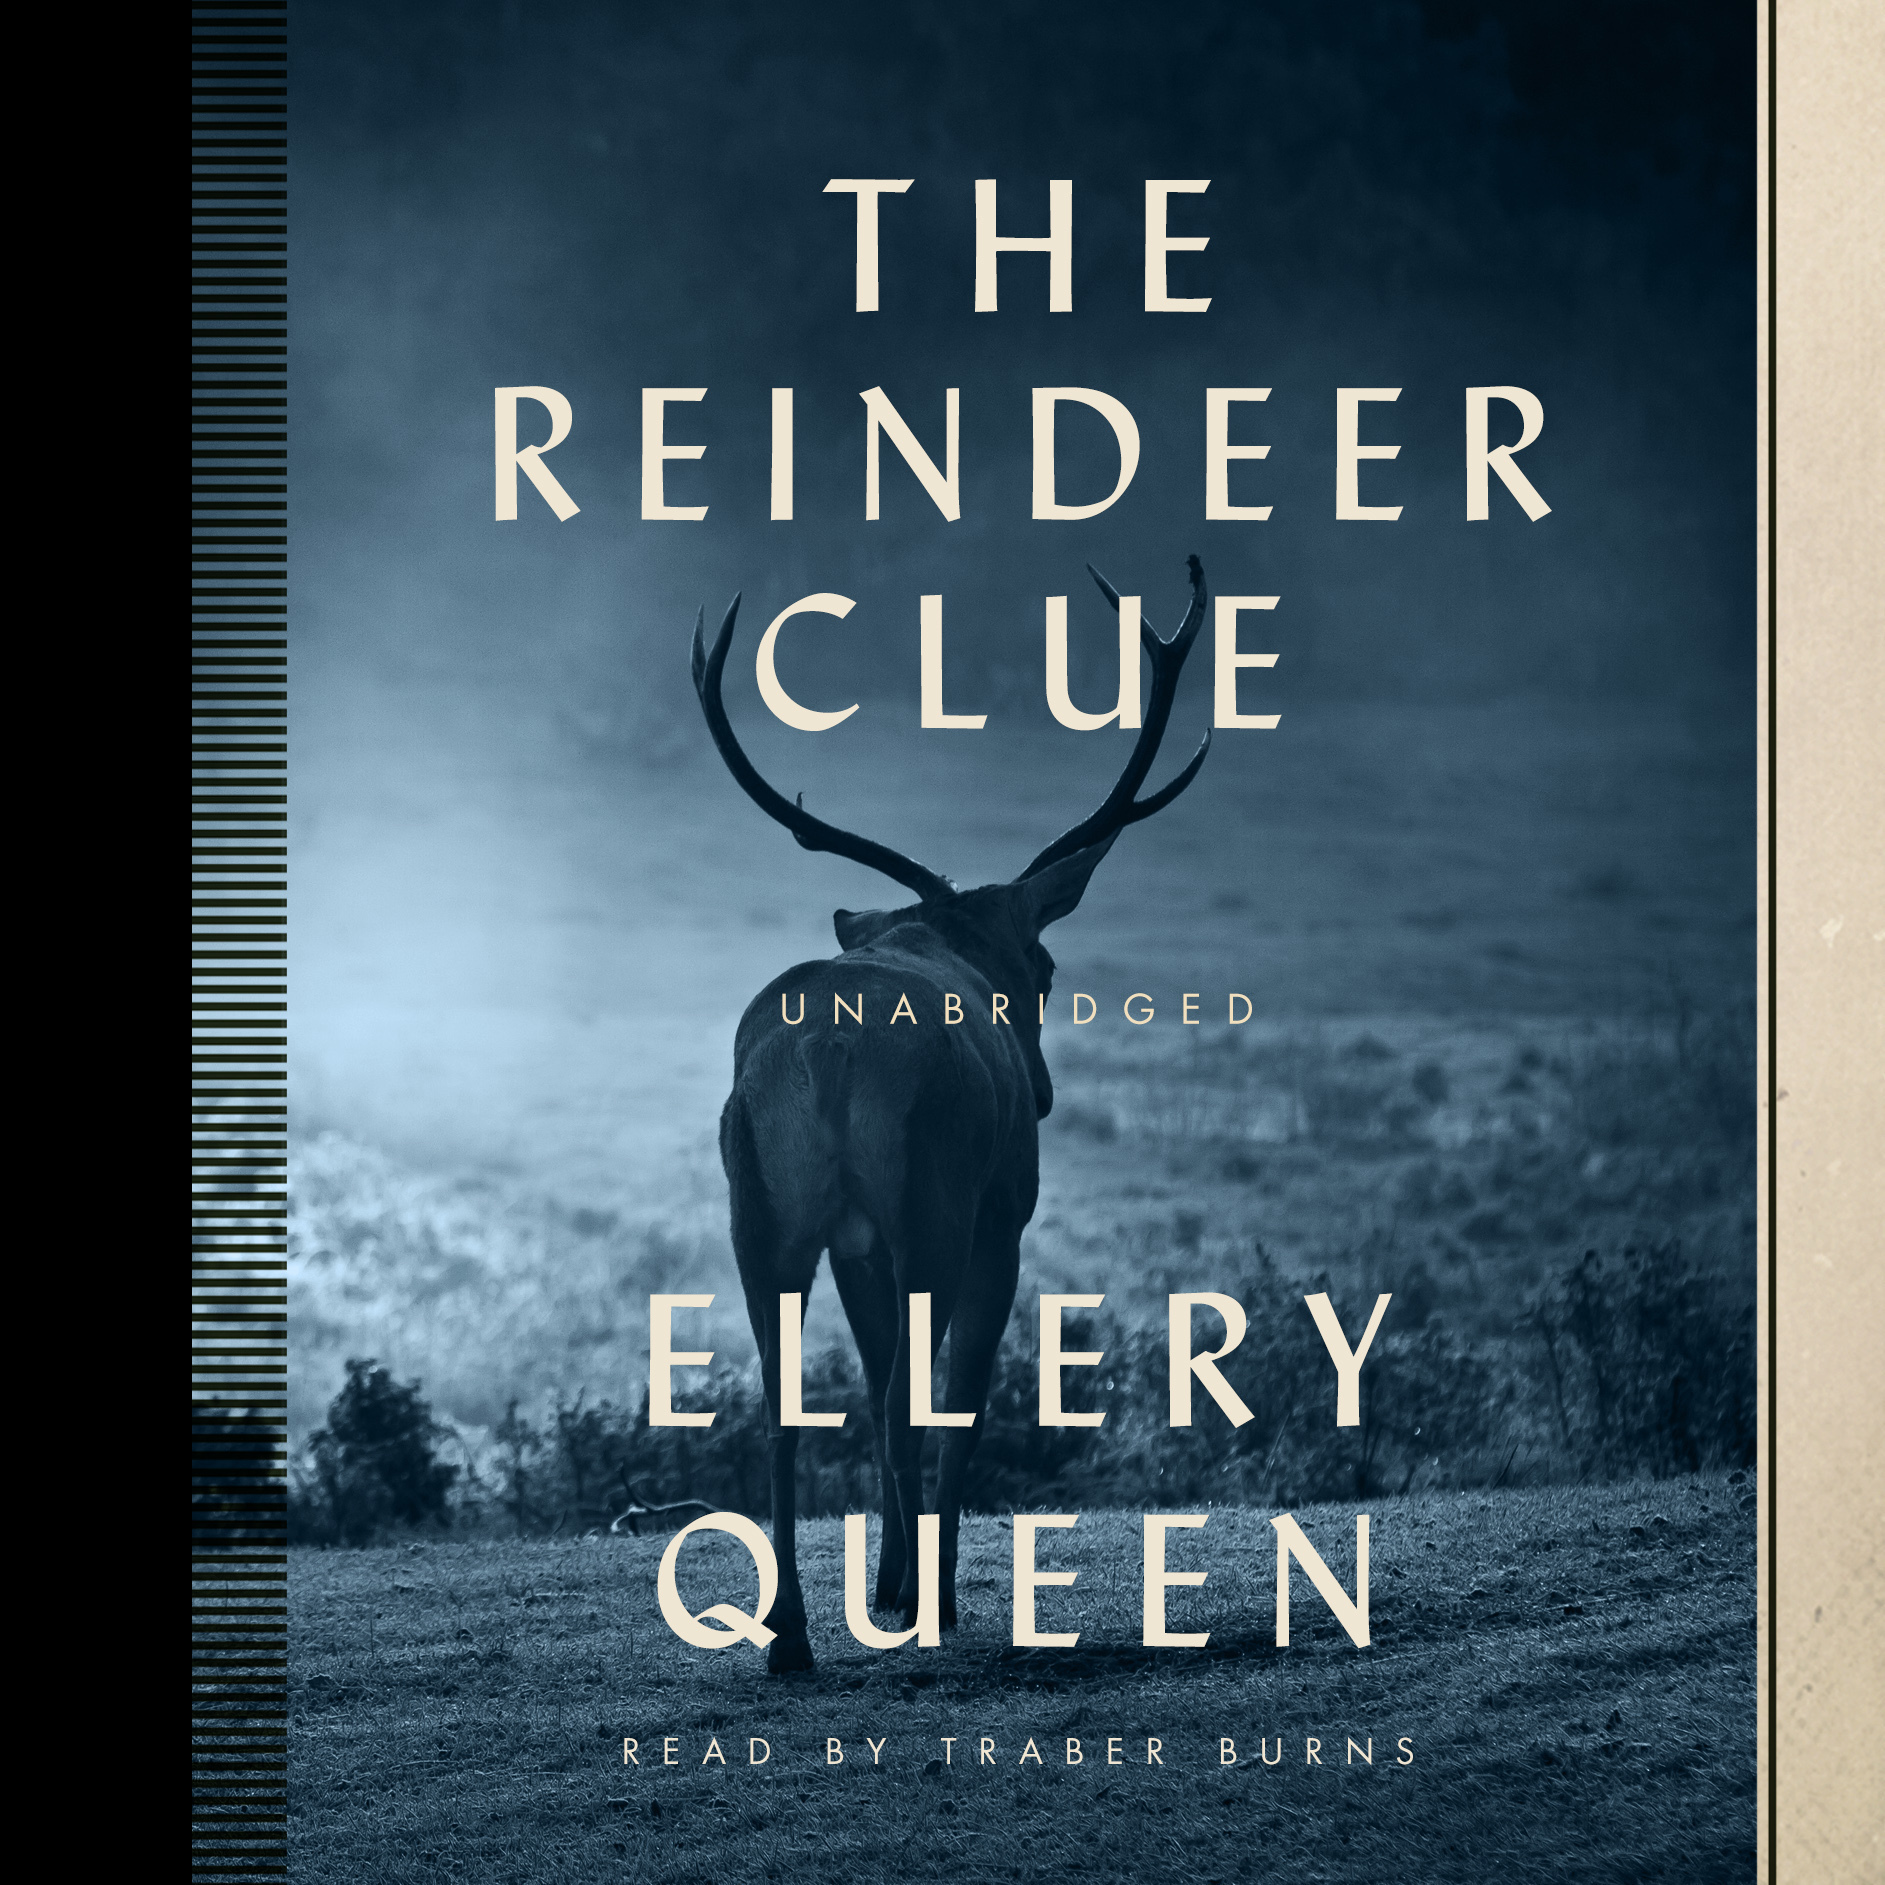 Printable The Reindeer Clue Audiobook Cover Art